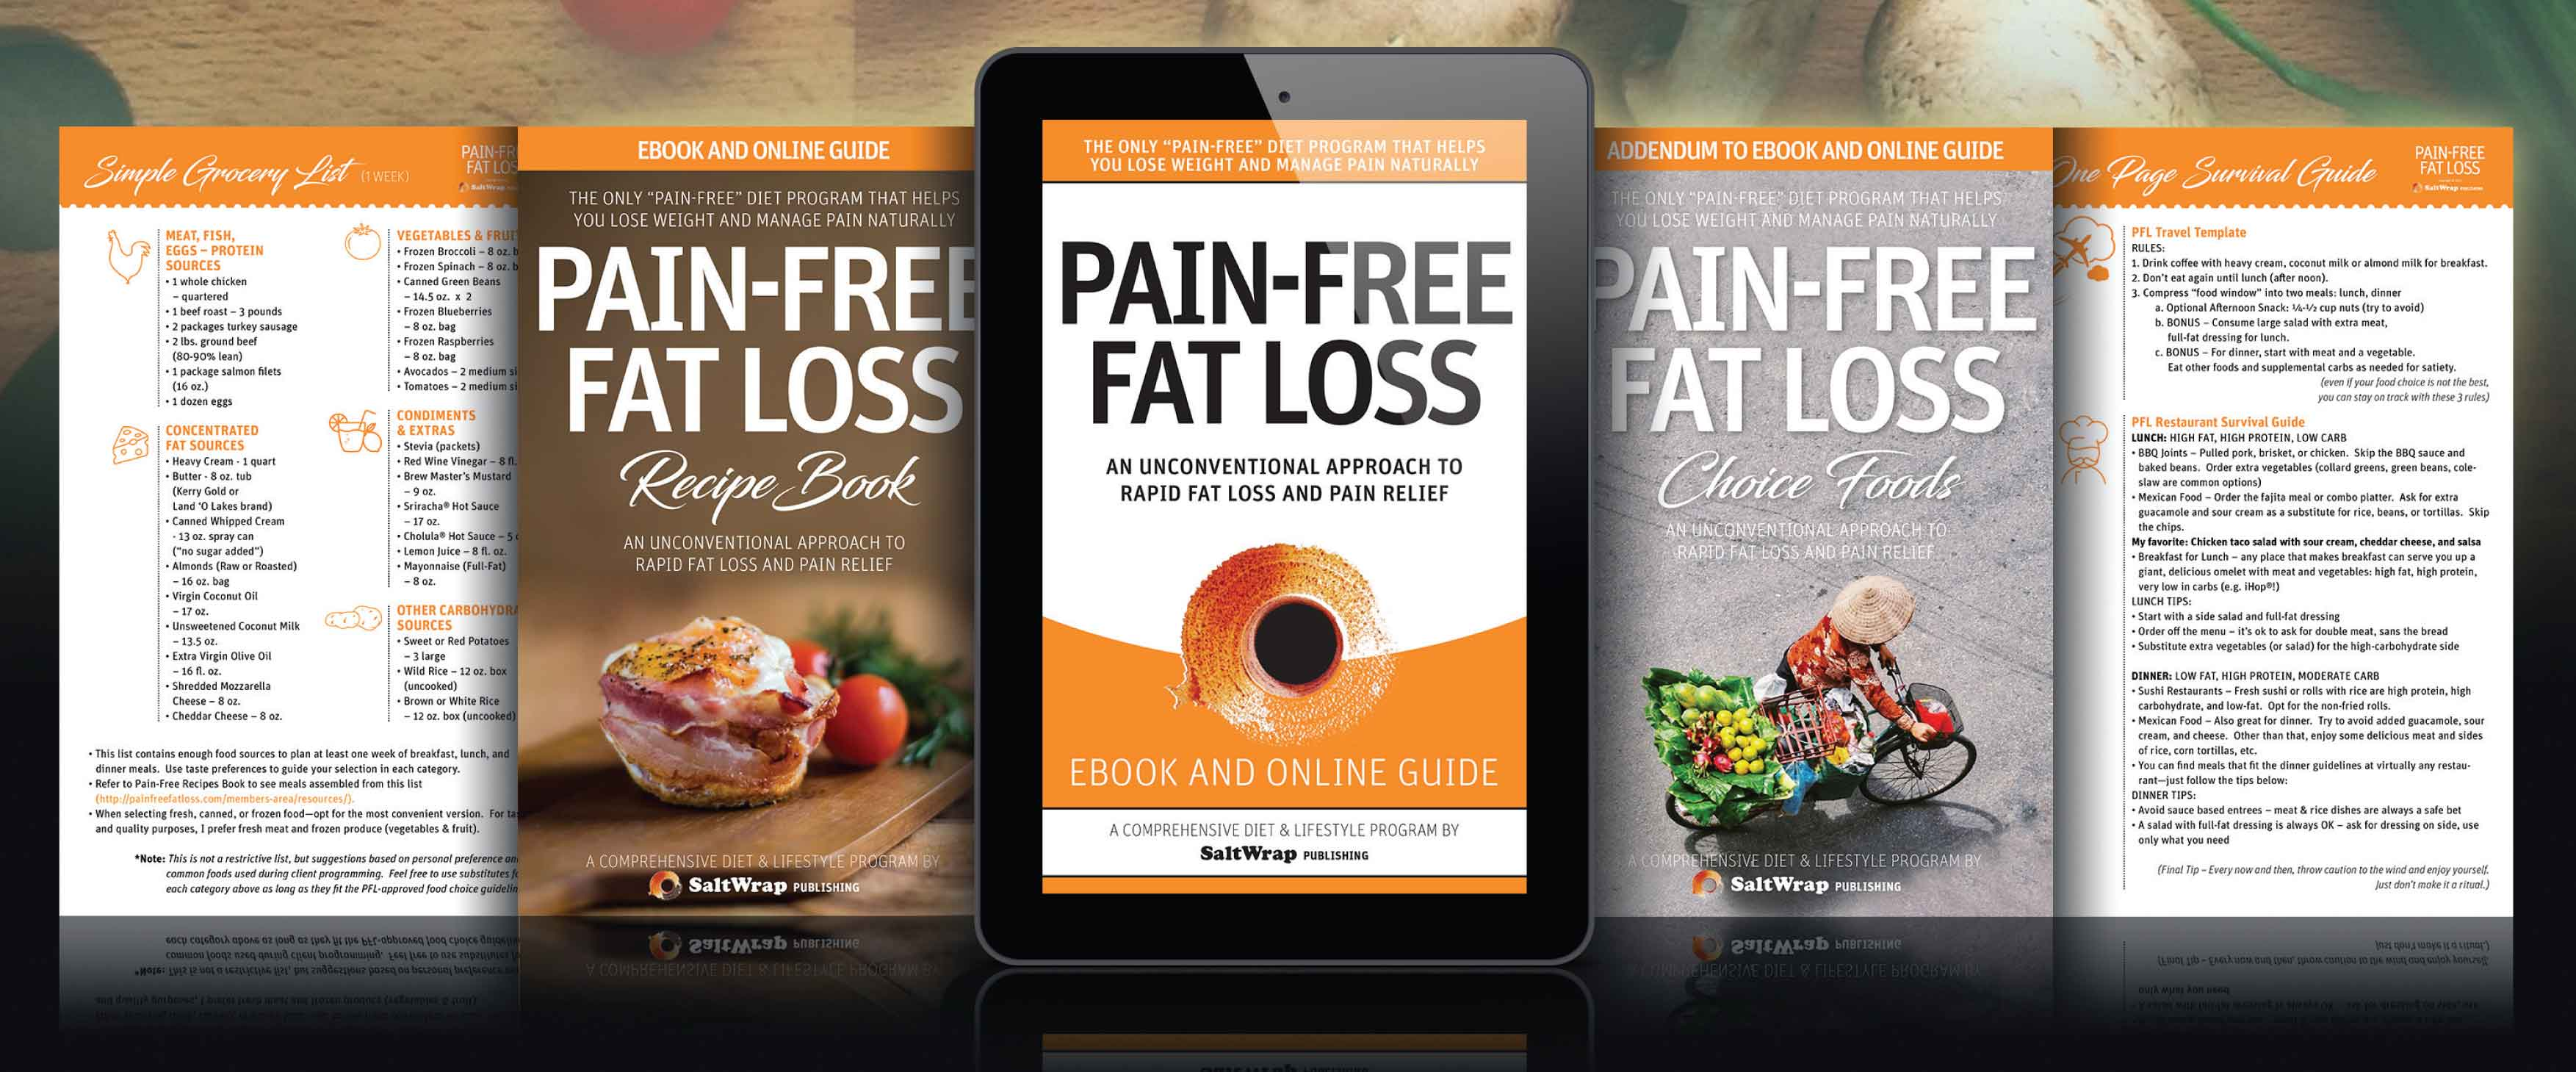 Pain-Free Fat Loss collection all